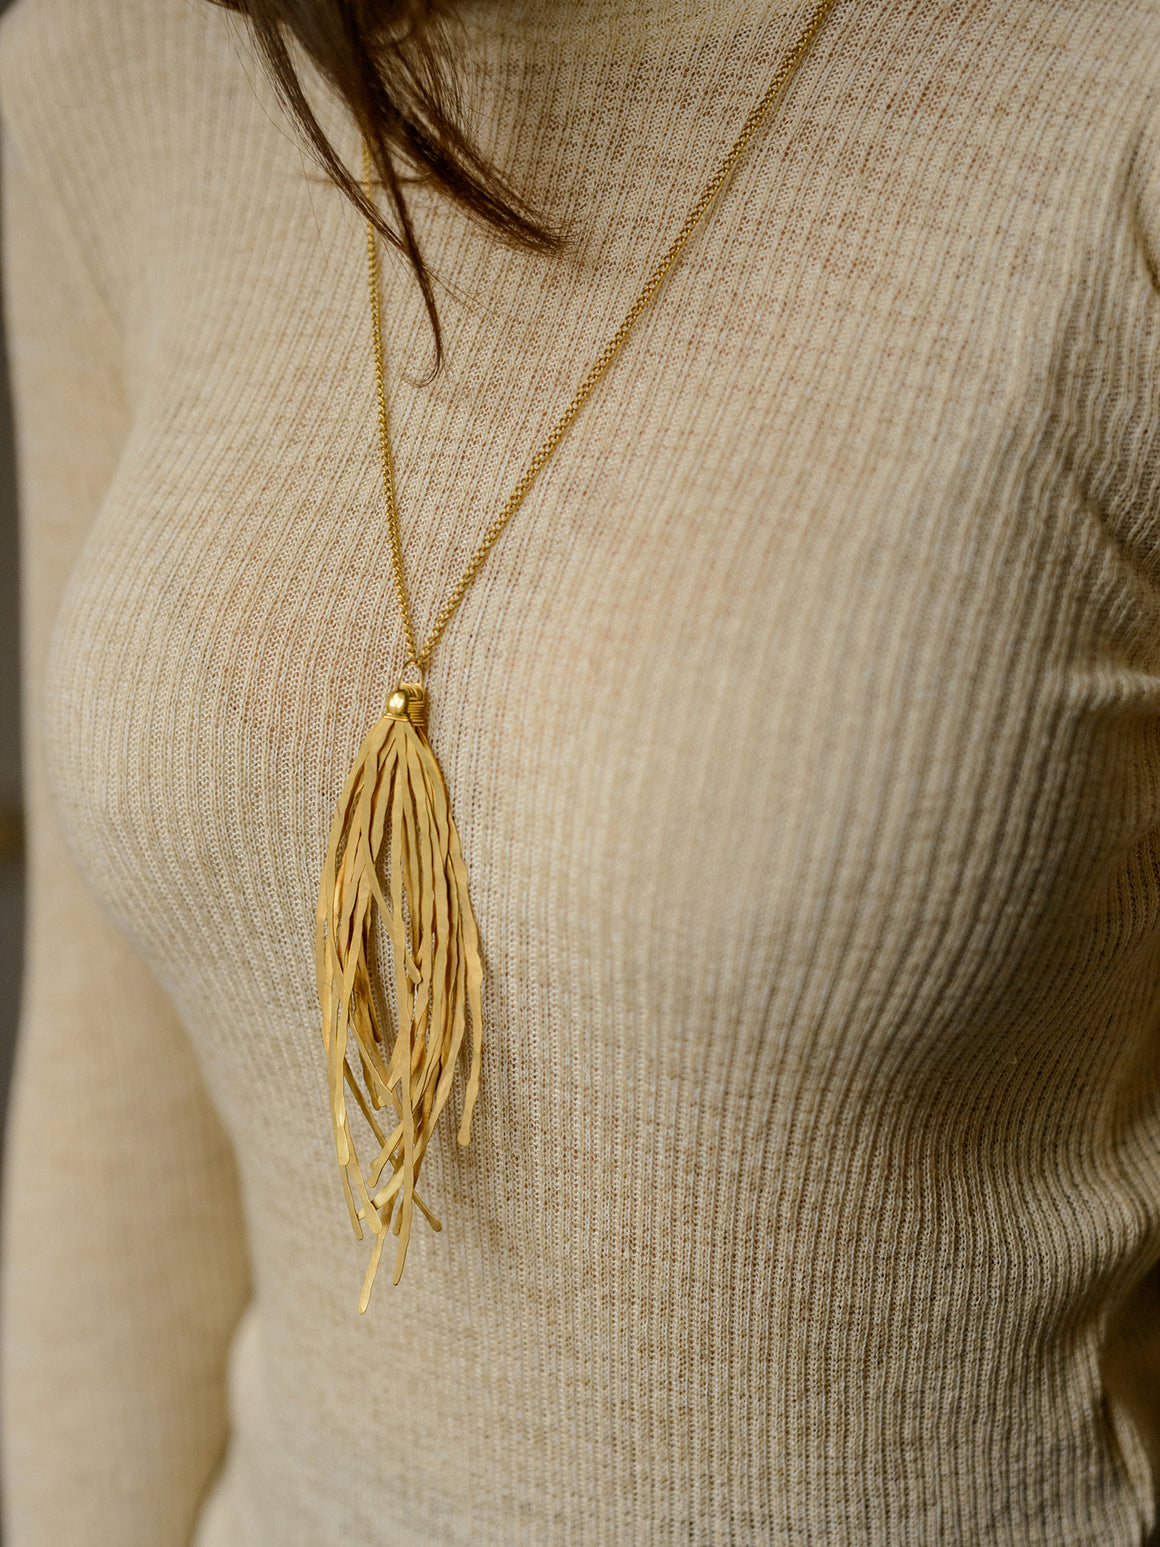 ECHO CHIC - Hammered grass necklace